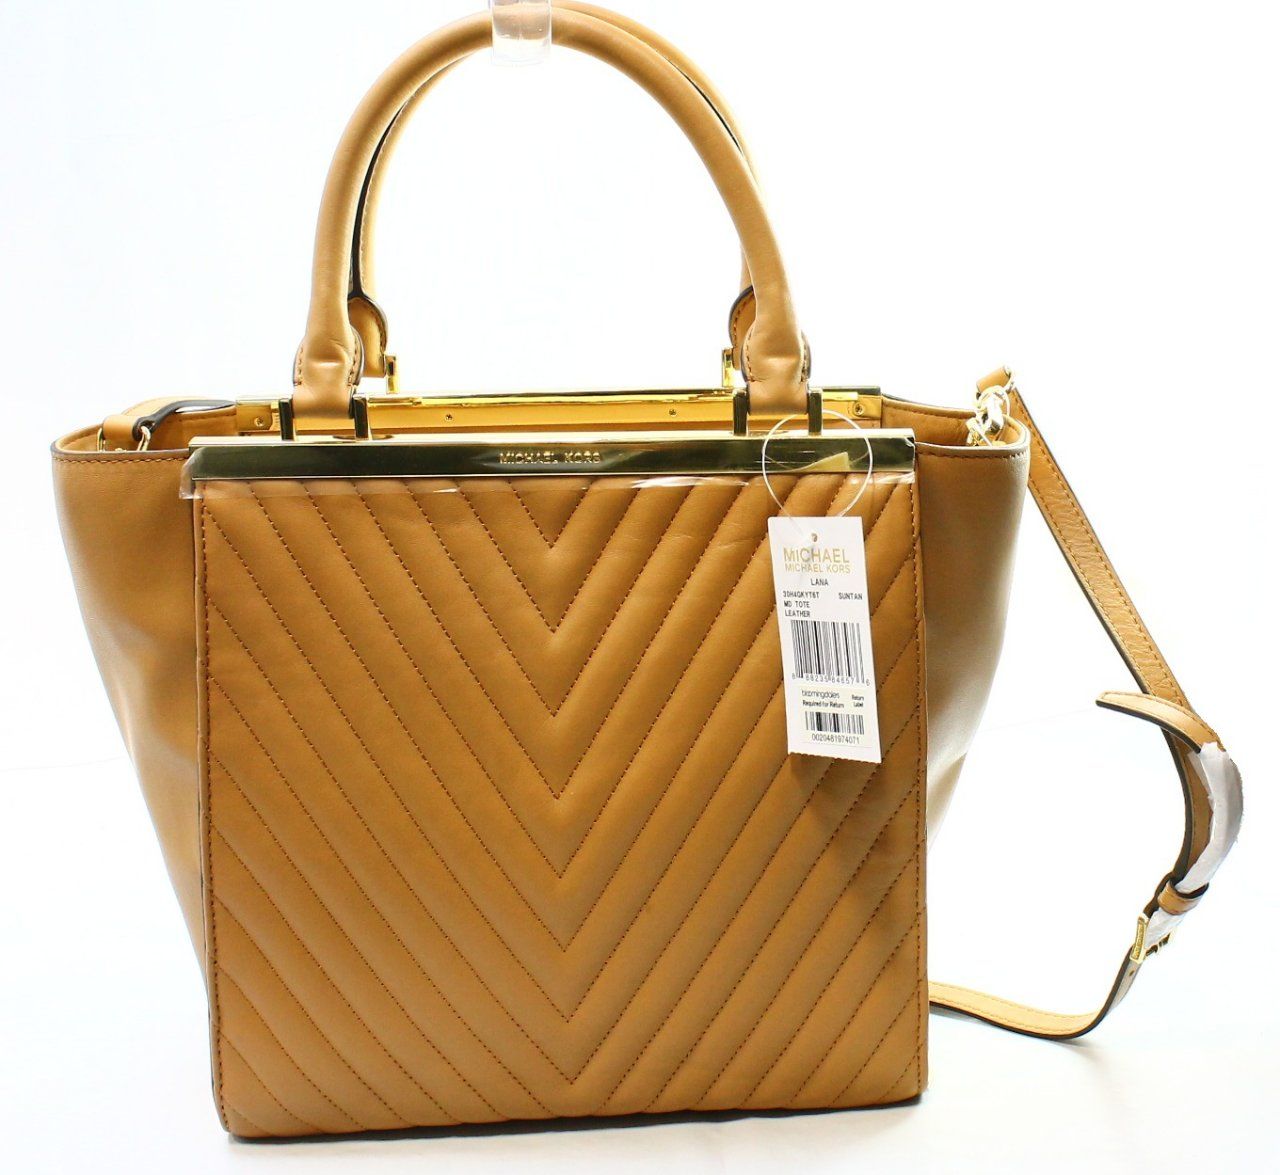 michael kors handbags outlet store locations  michael kors new beige